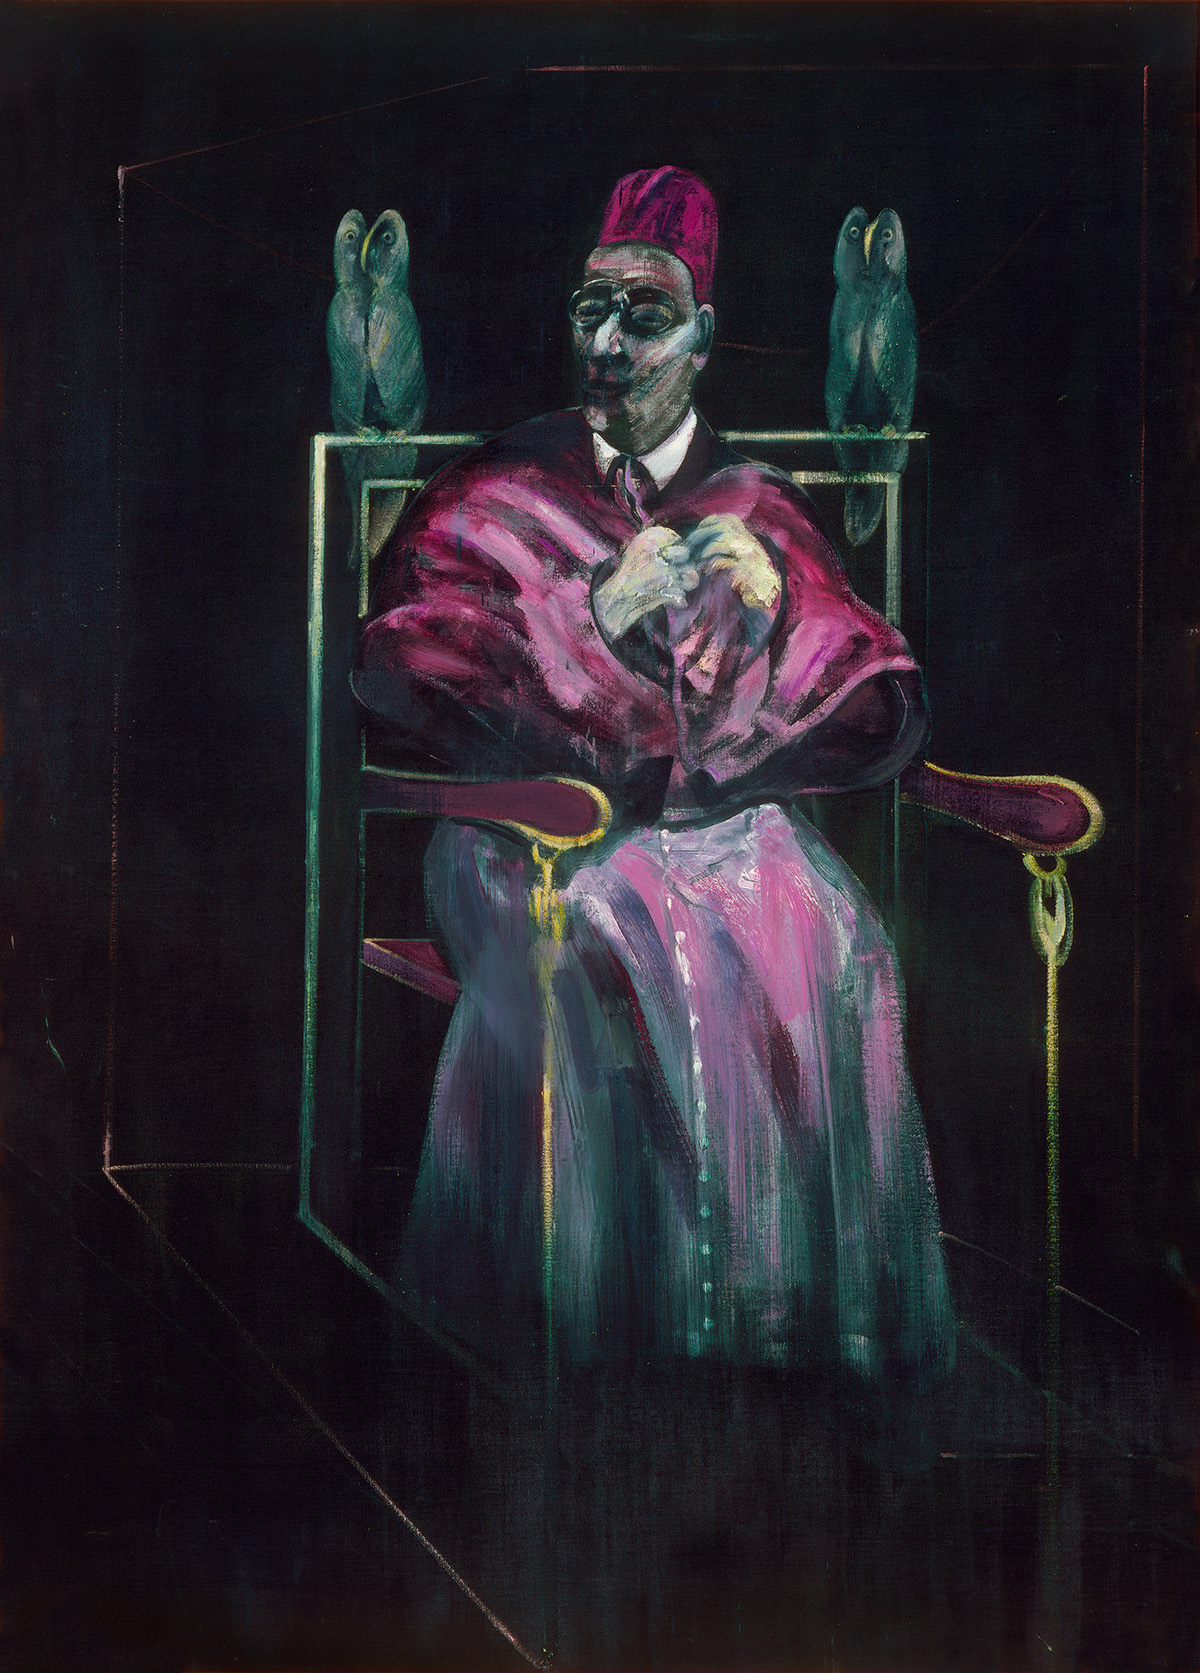 Francis Bacon, Painting, 1958. Oil on canvas. CR number 58-02. © The Estate of Francis Bacon / DACS London 2020. All rights reserved.